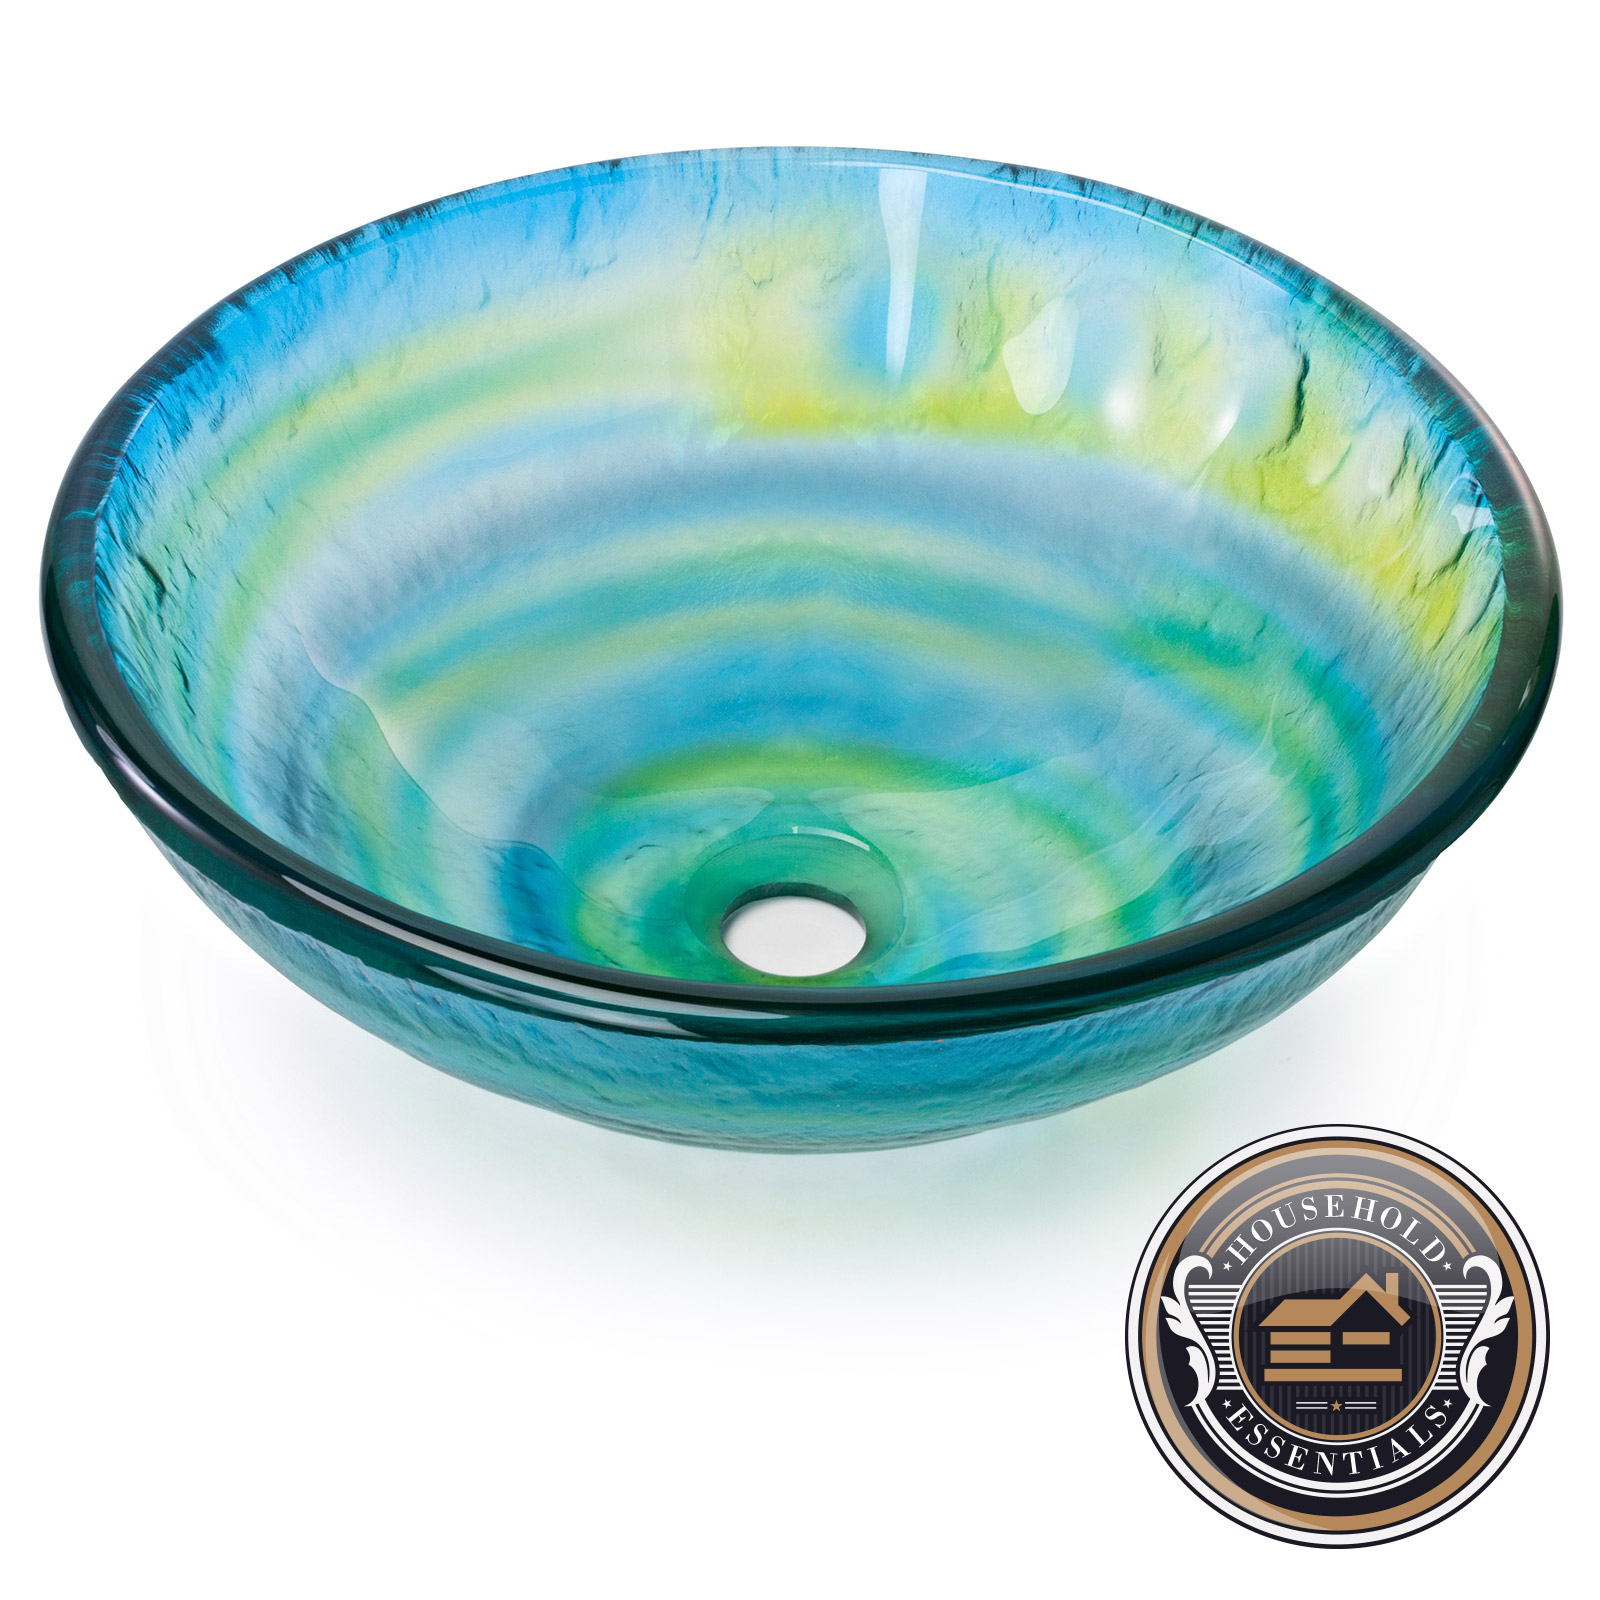 Modern Glass Vessel Sink Bathroom Vanity Bowl Round Blue Green